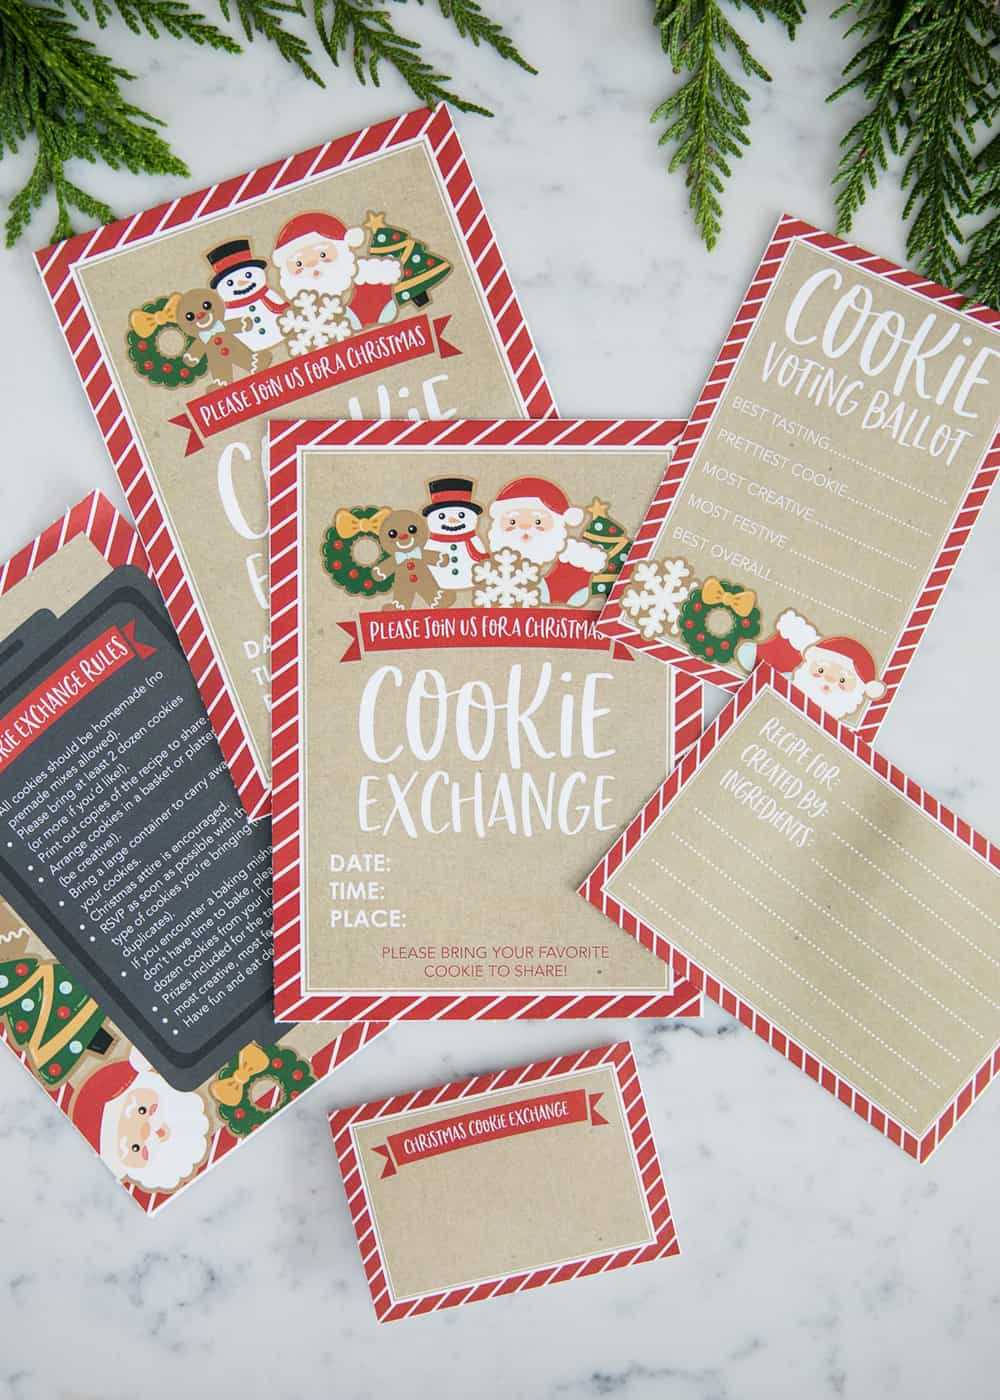 How To Host A Cookie Exchange (W/ Free Printables!) - I Intended For Cookie Exchange Recipe Card Template